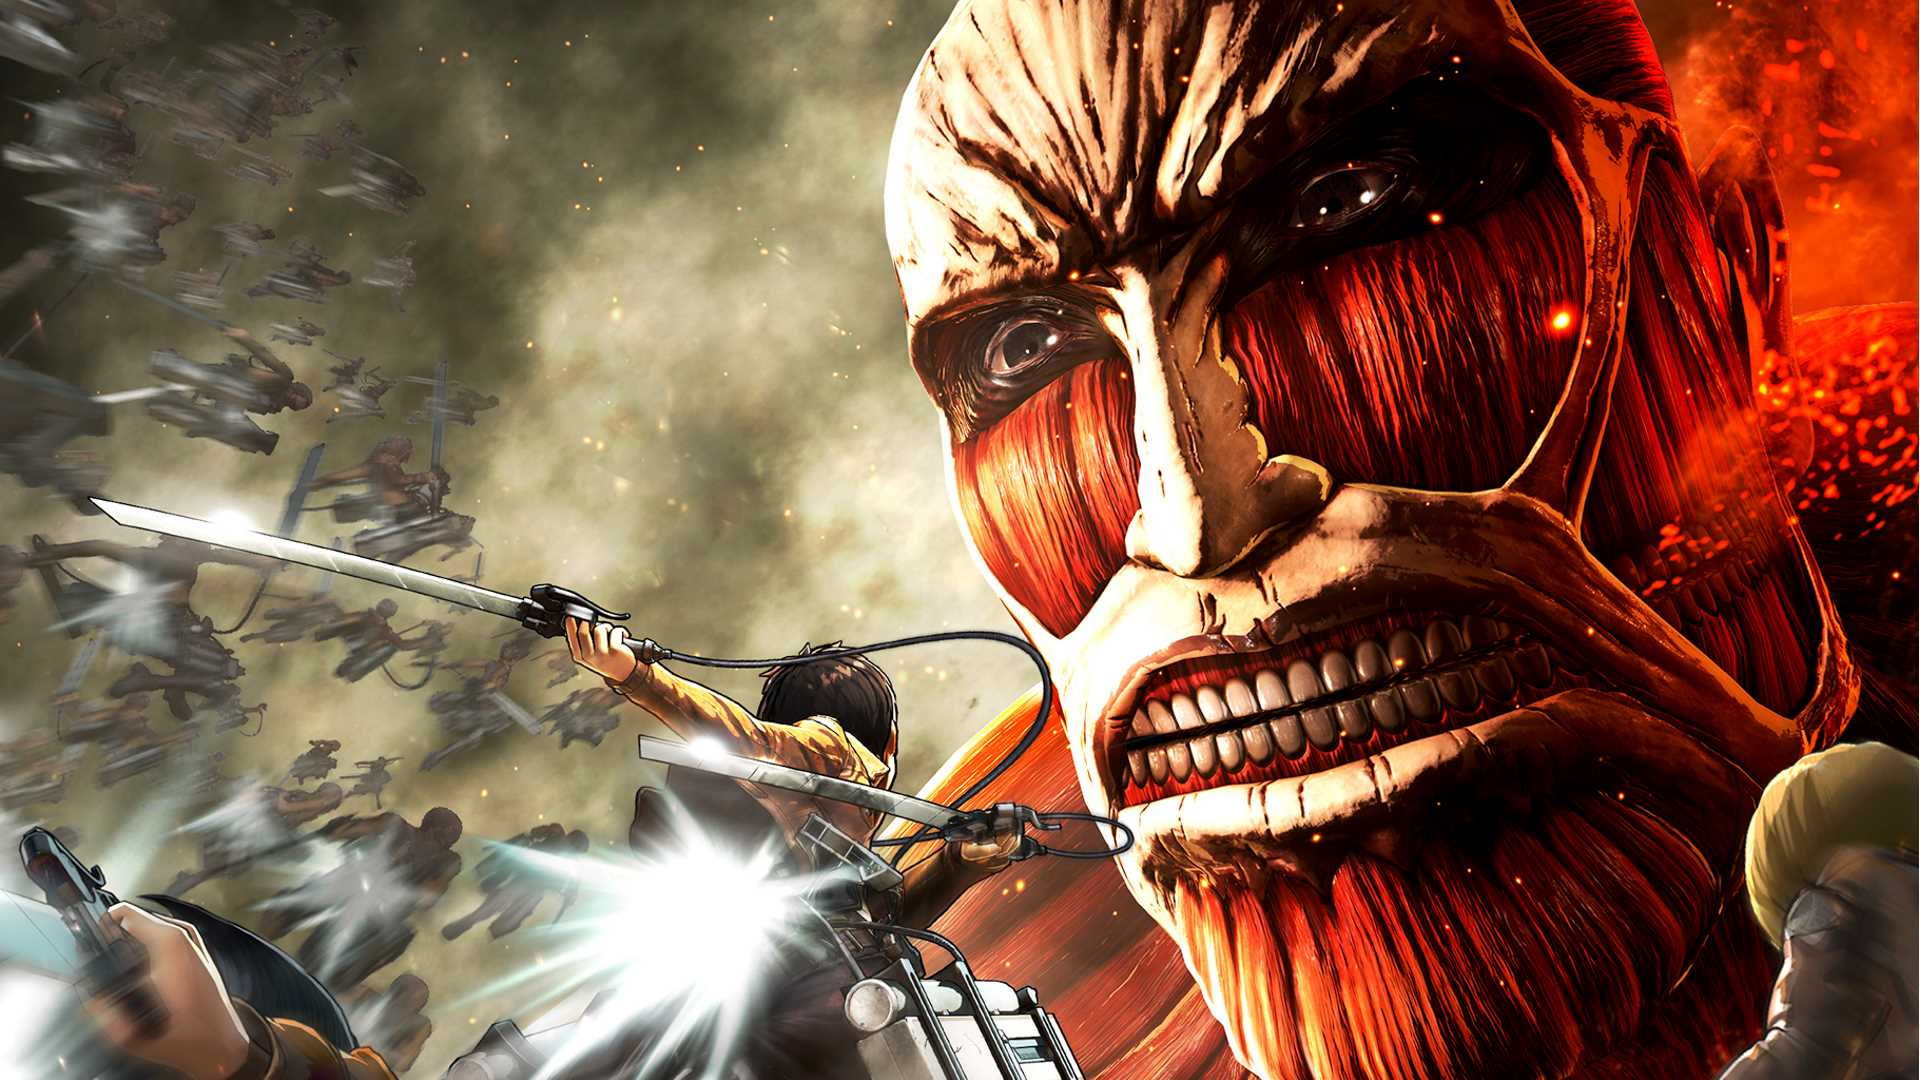 Check out this fantastic collection of wings of freedom attack on titan wallpapers, with 32 wings of freedom attack on titan background images for your. Attack on Titan: Wings of Freedom Review